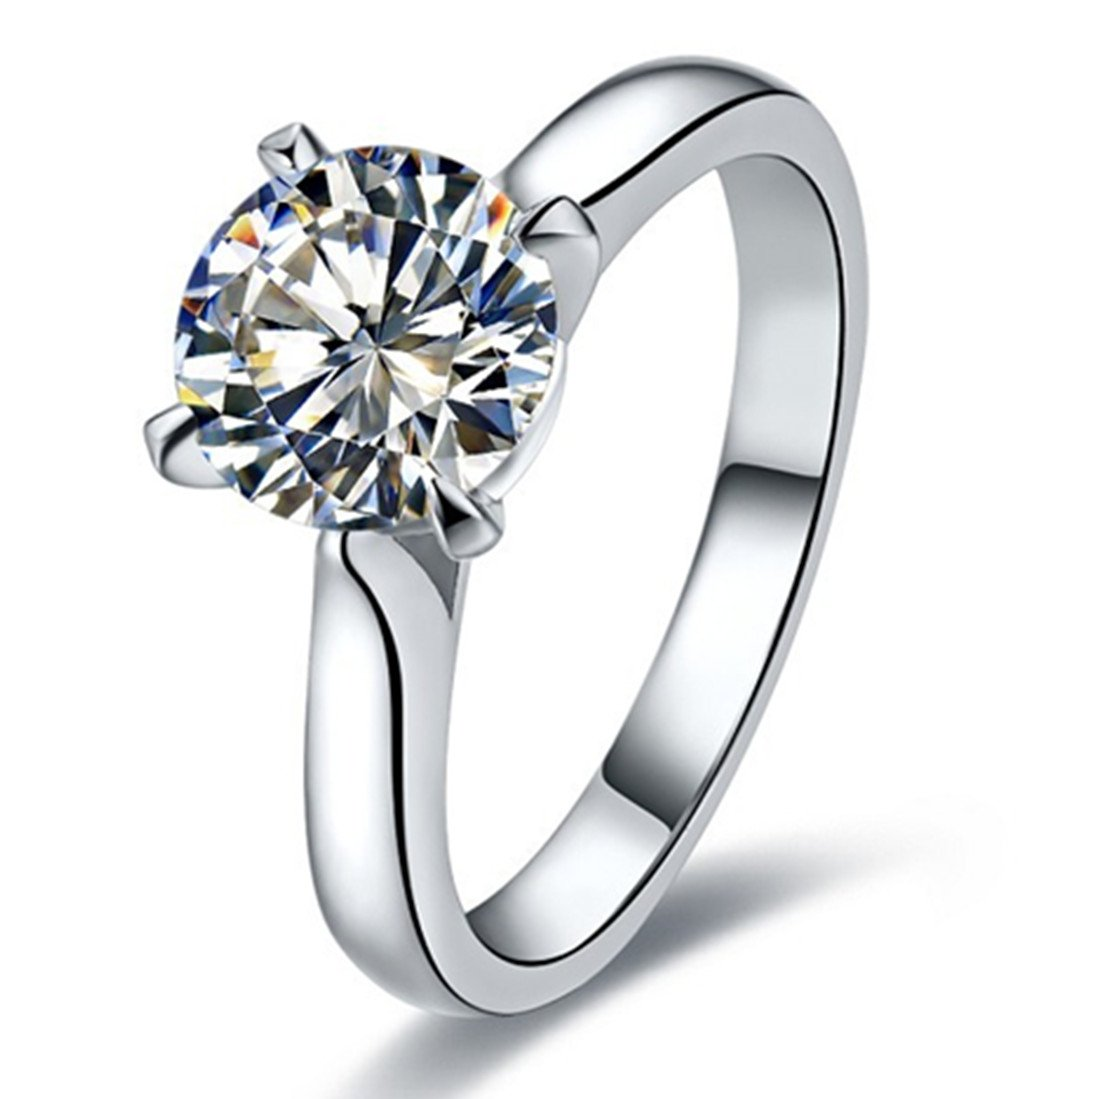 2CT Brand Ring Classic Prongs Setting NSCD Simulate Diamond Ring Engagement Solitaire Round Ring for Women 3MJEWELRY 3M Jewelry SRMJZ0224